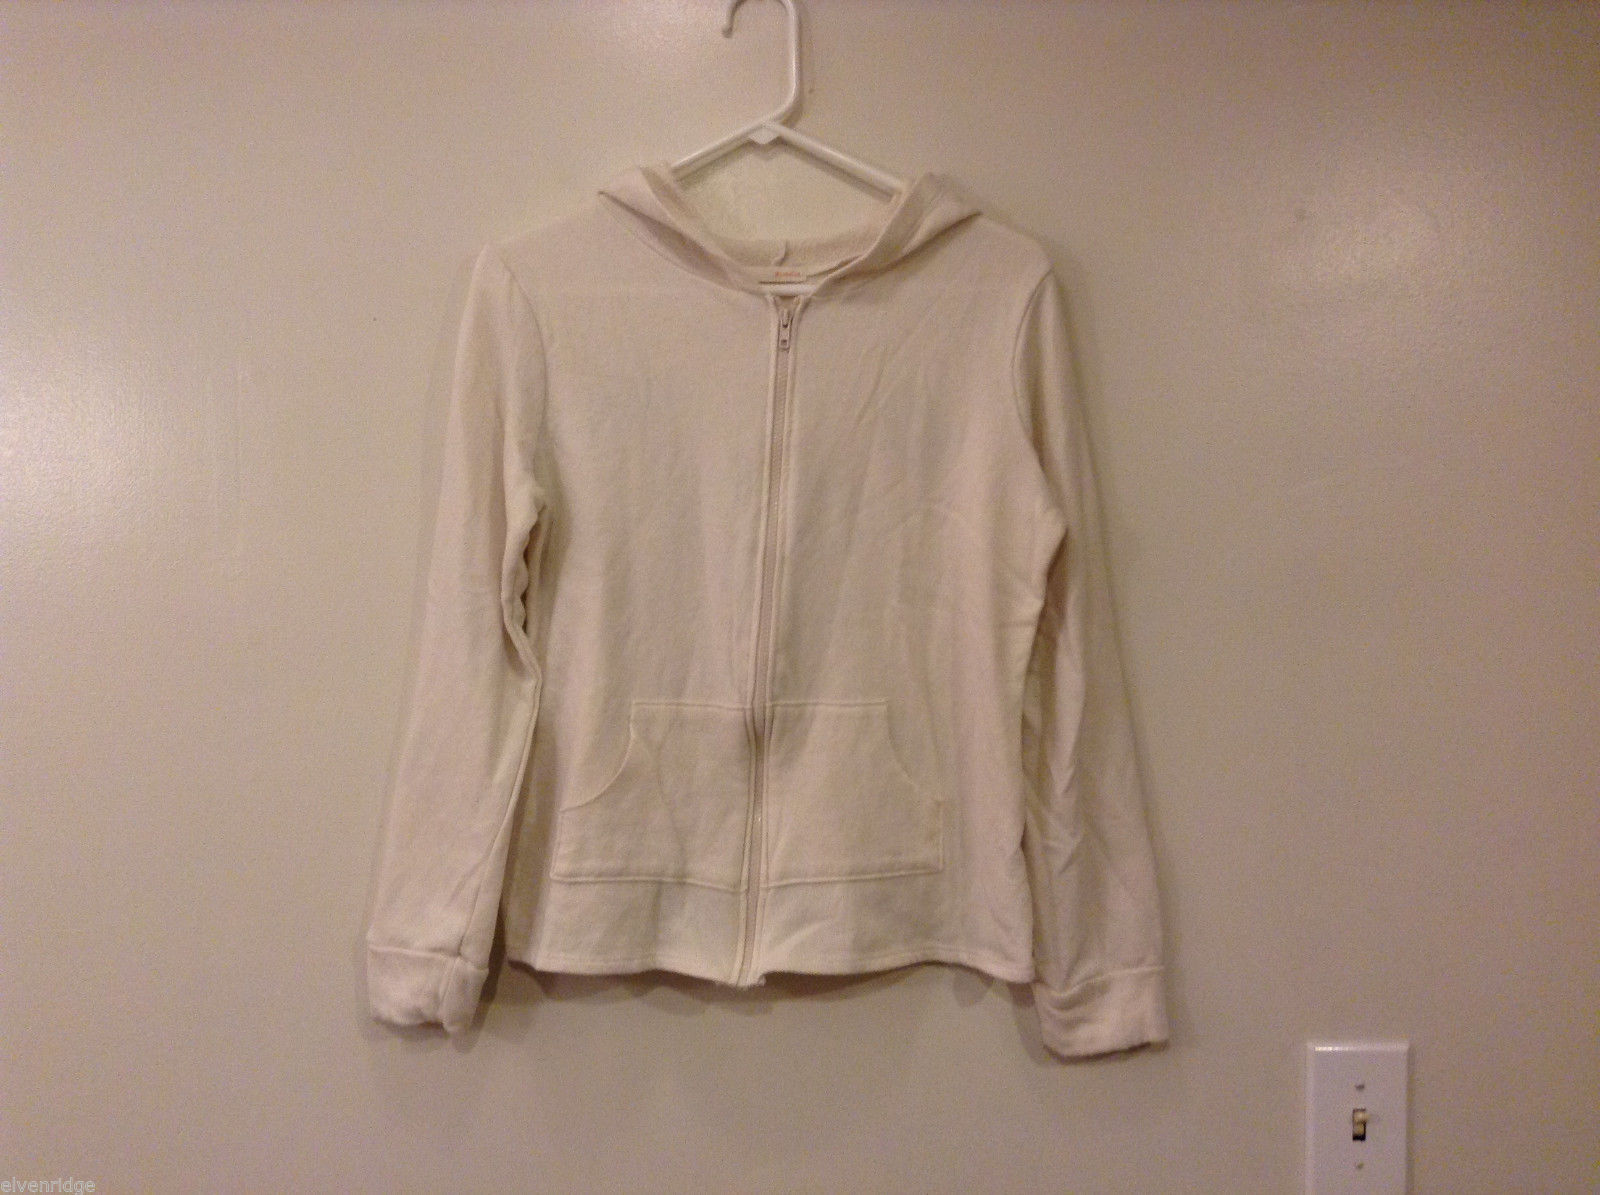 Michelle Women's Size M Hoodie Sweatshirt Panda Graphic Natural White Zipper Zip